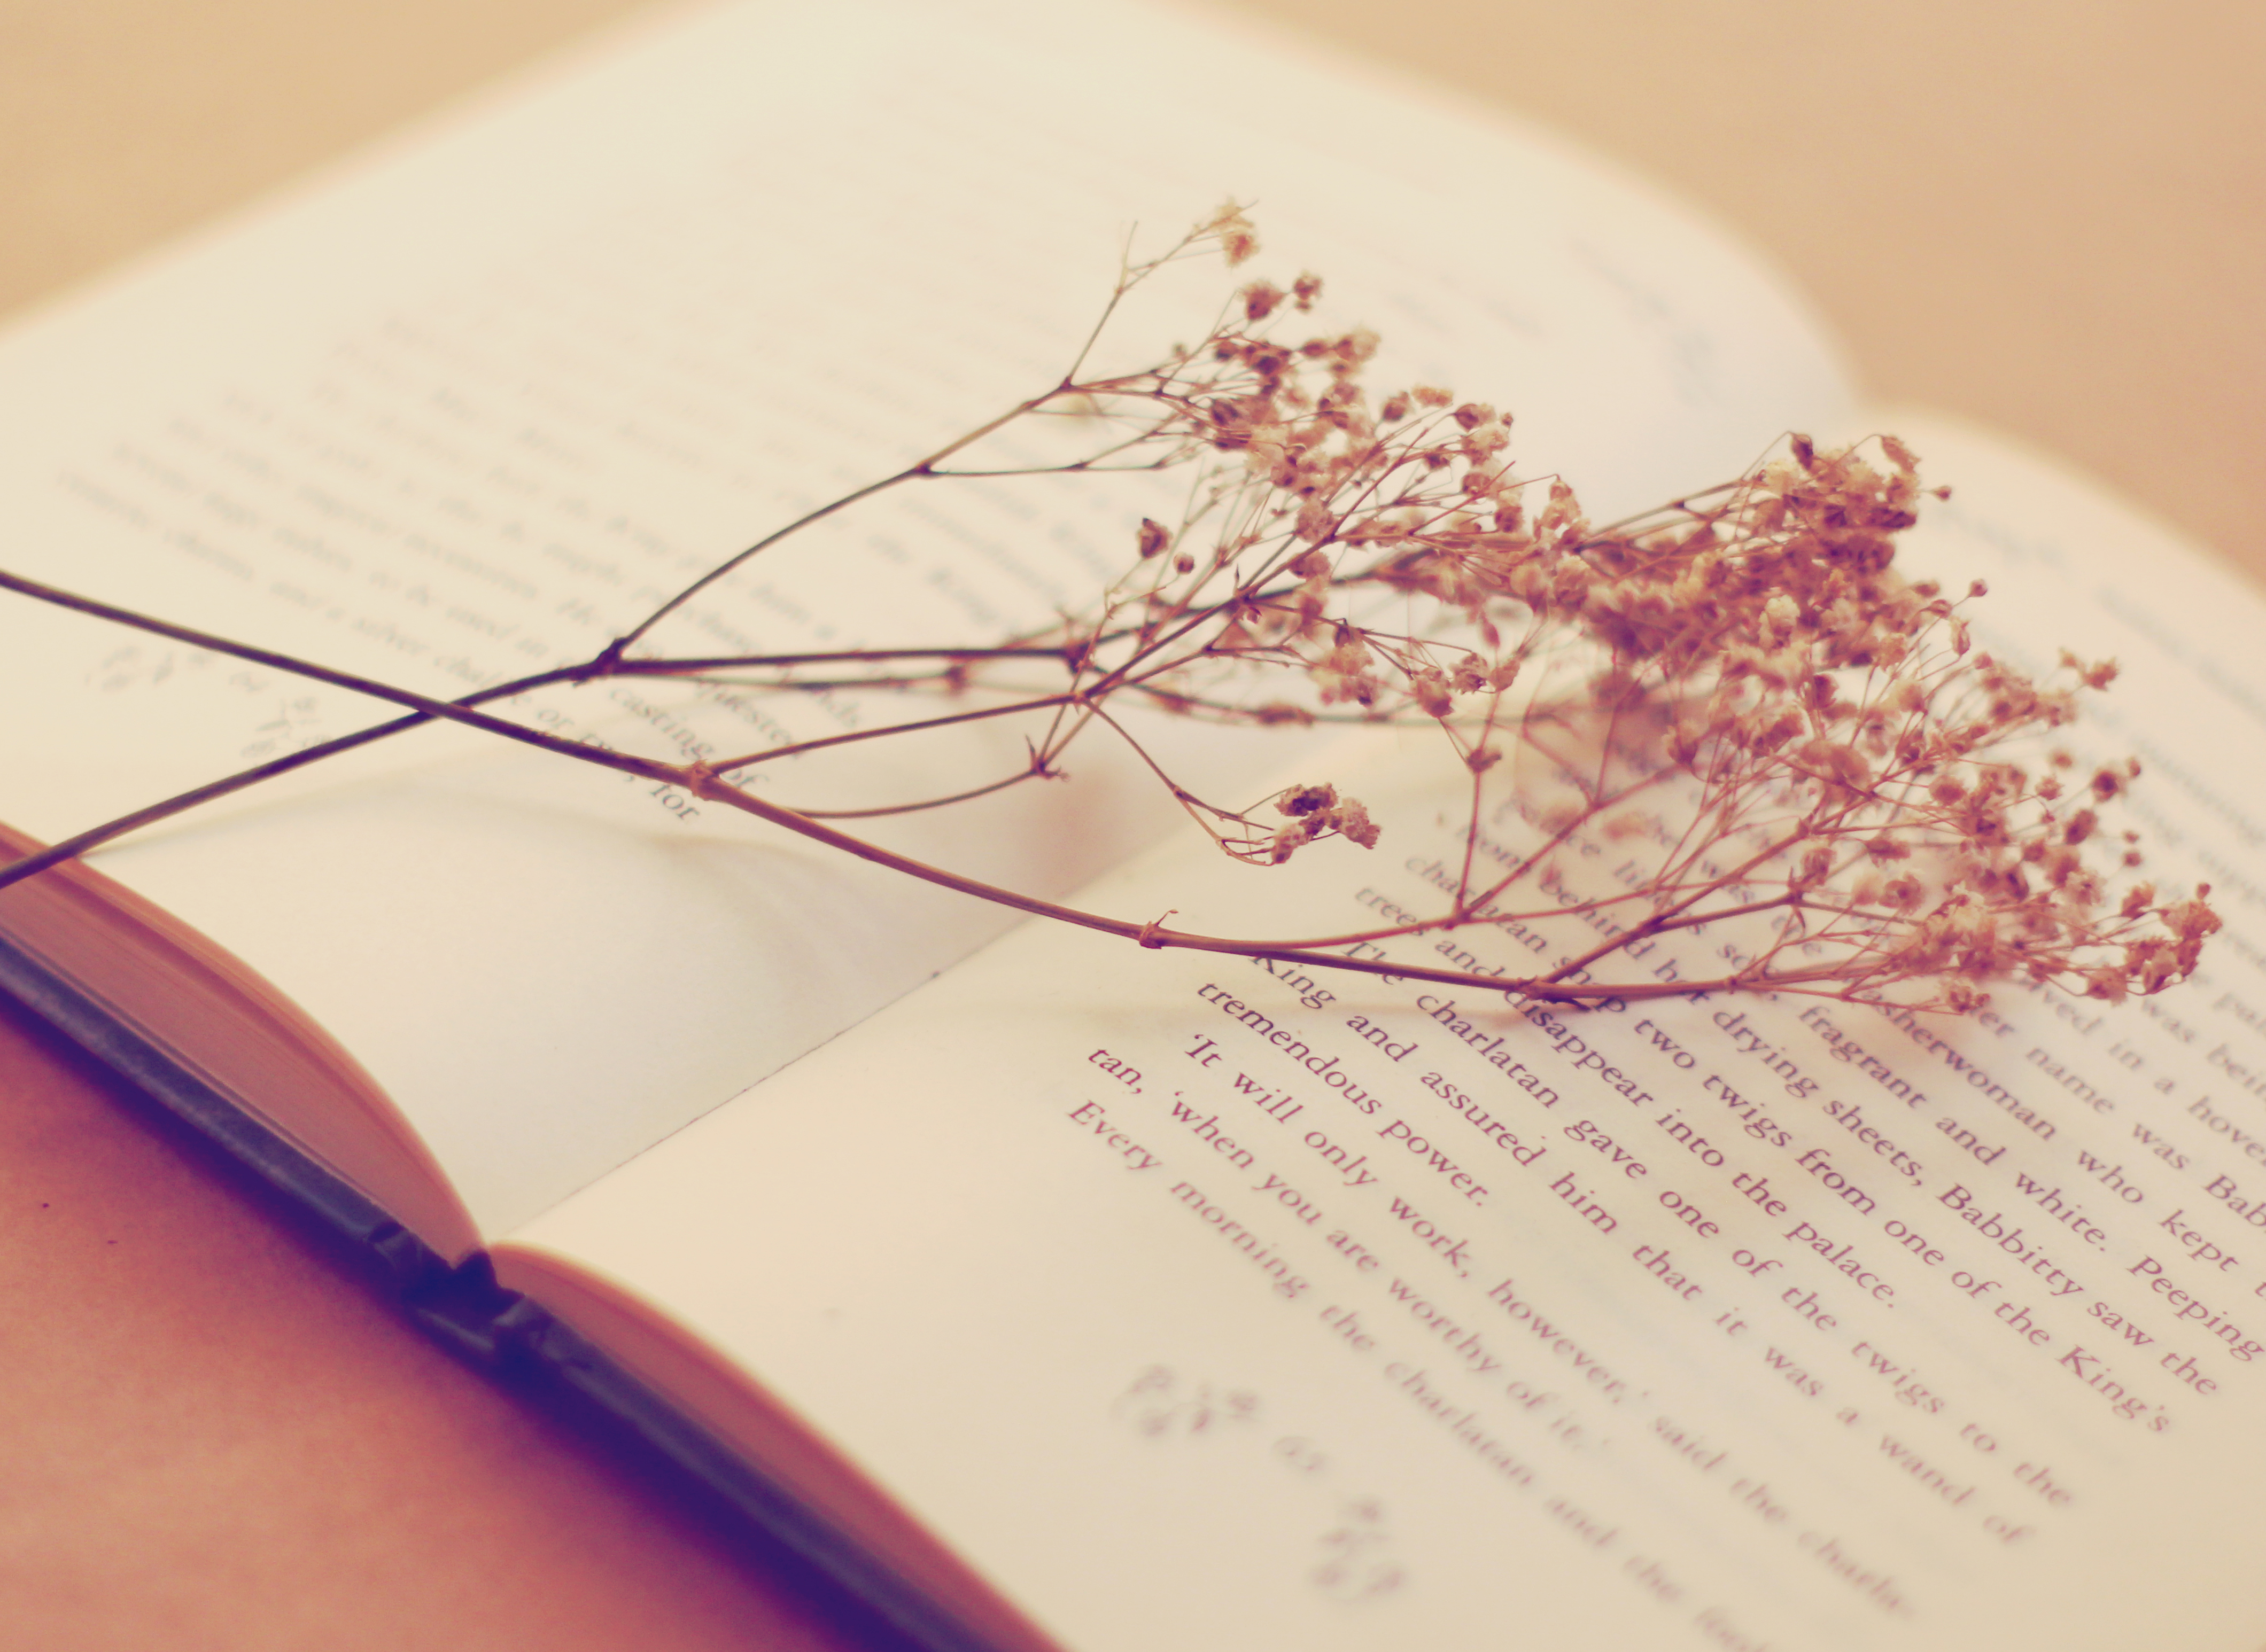 Old book with dried flowers, retro filter effect